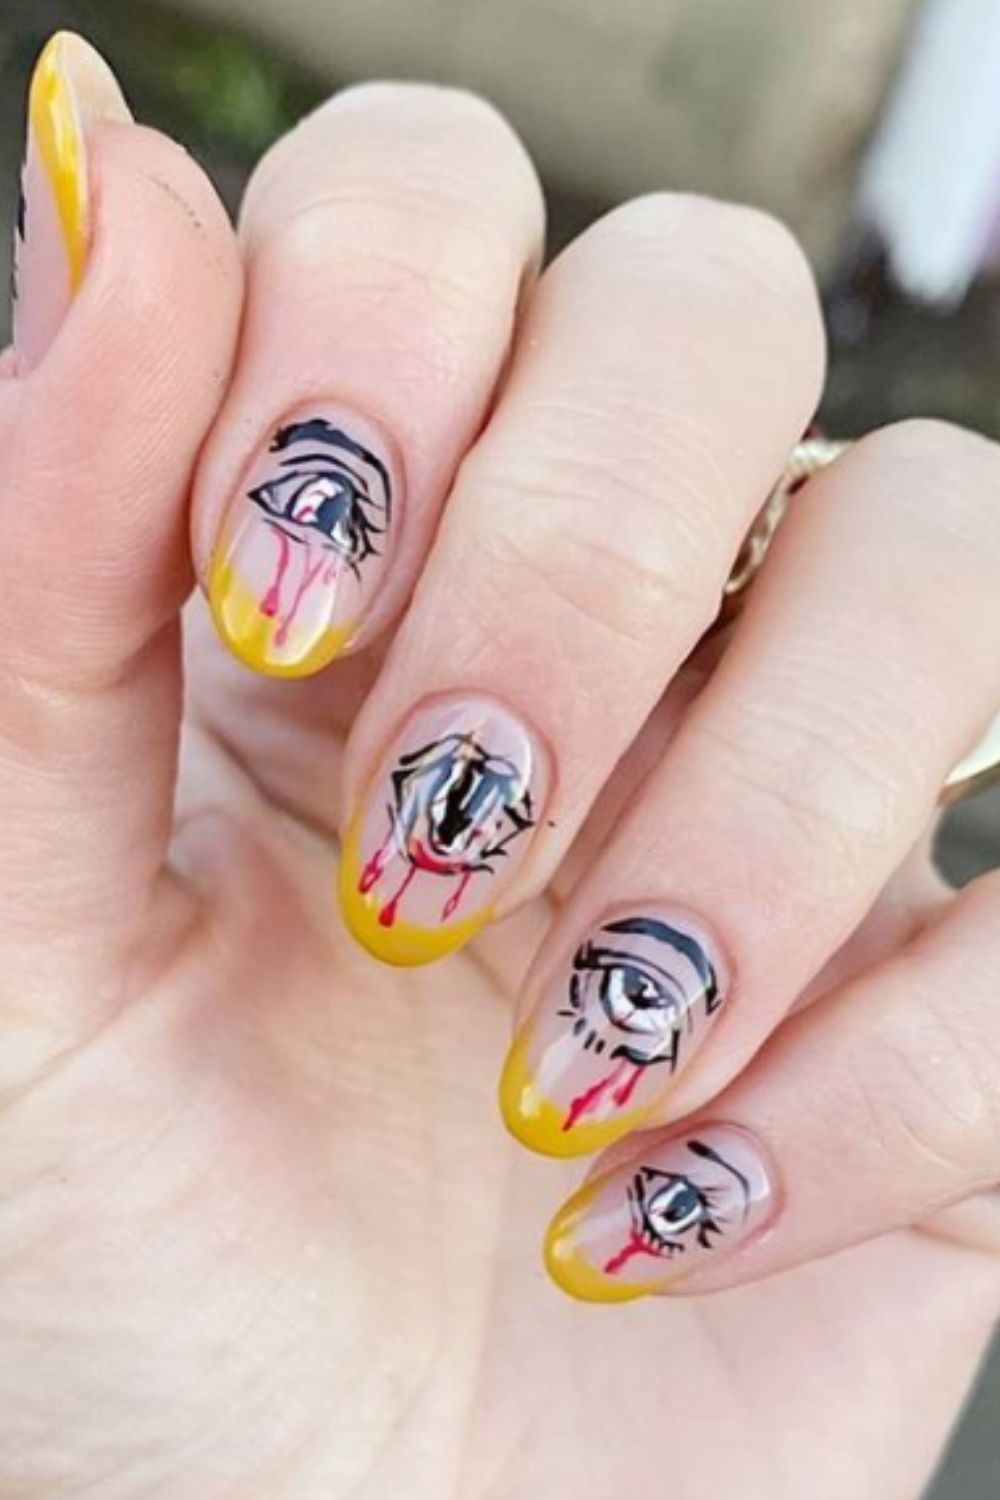 How Can We Style Halloween Nail?